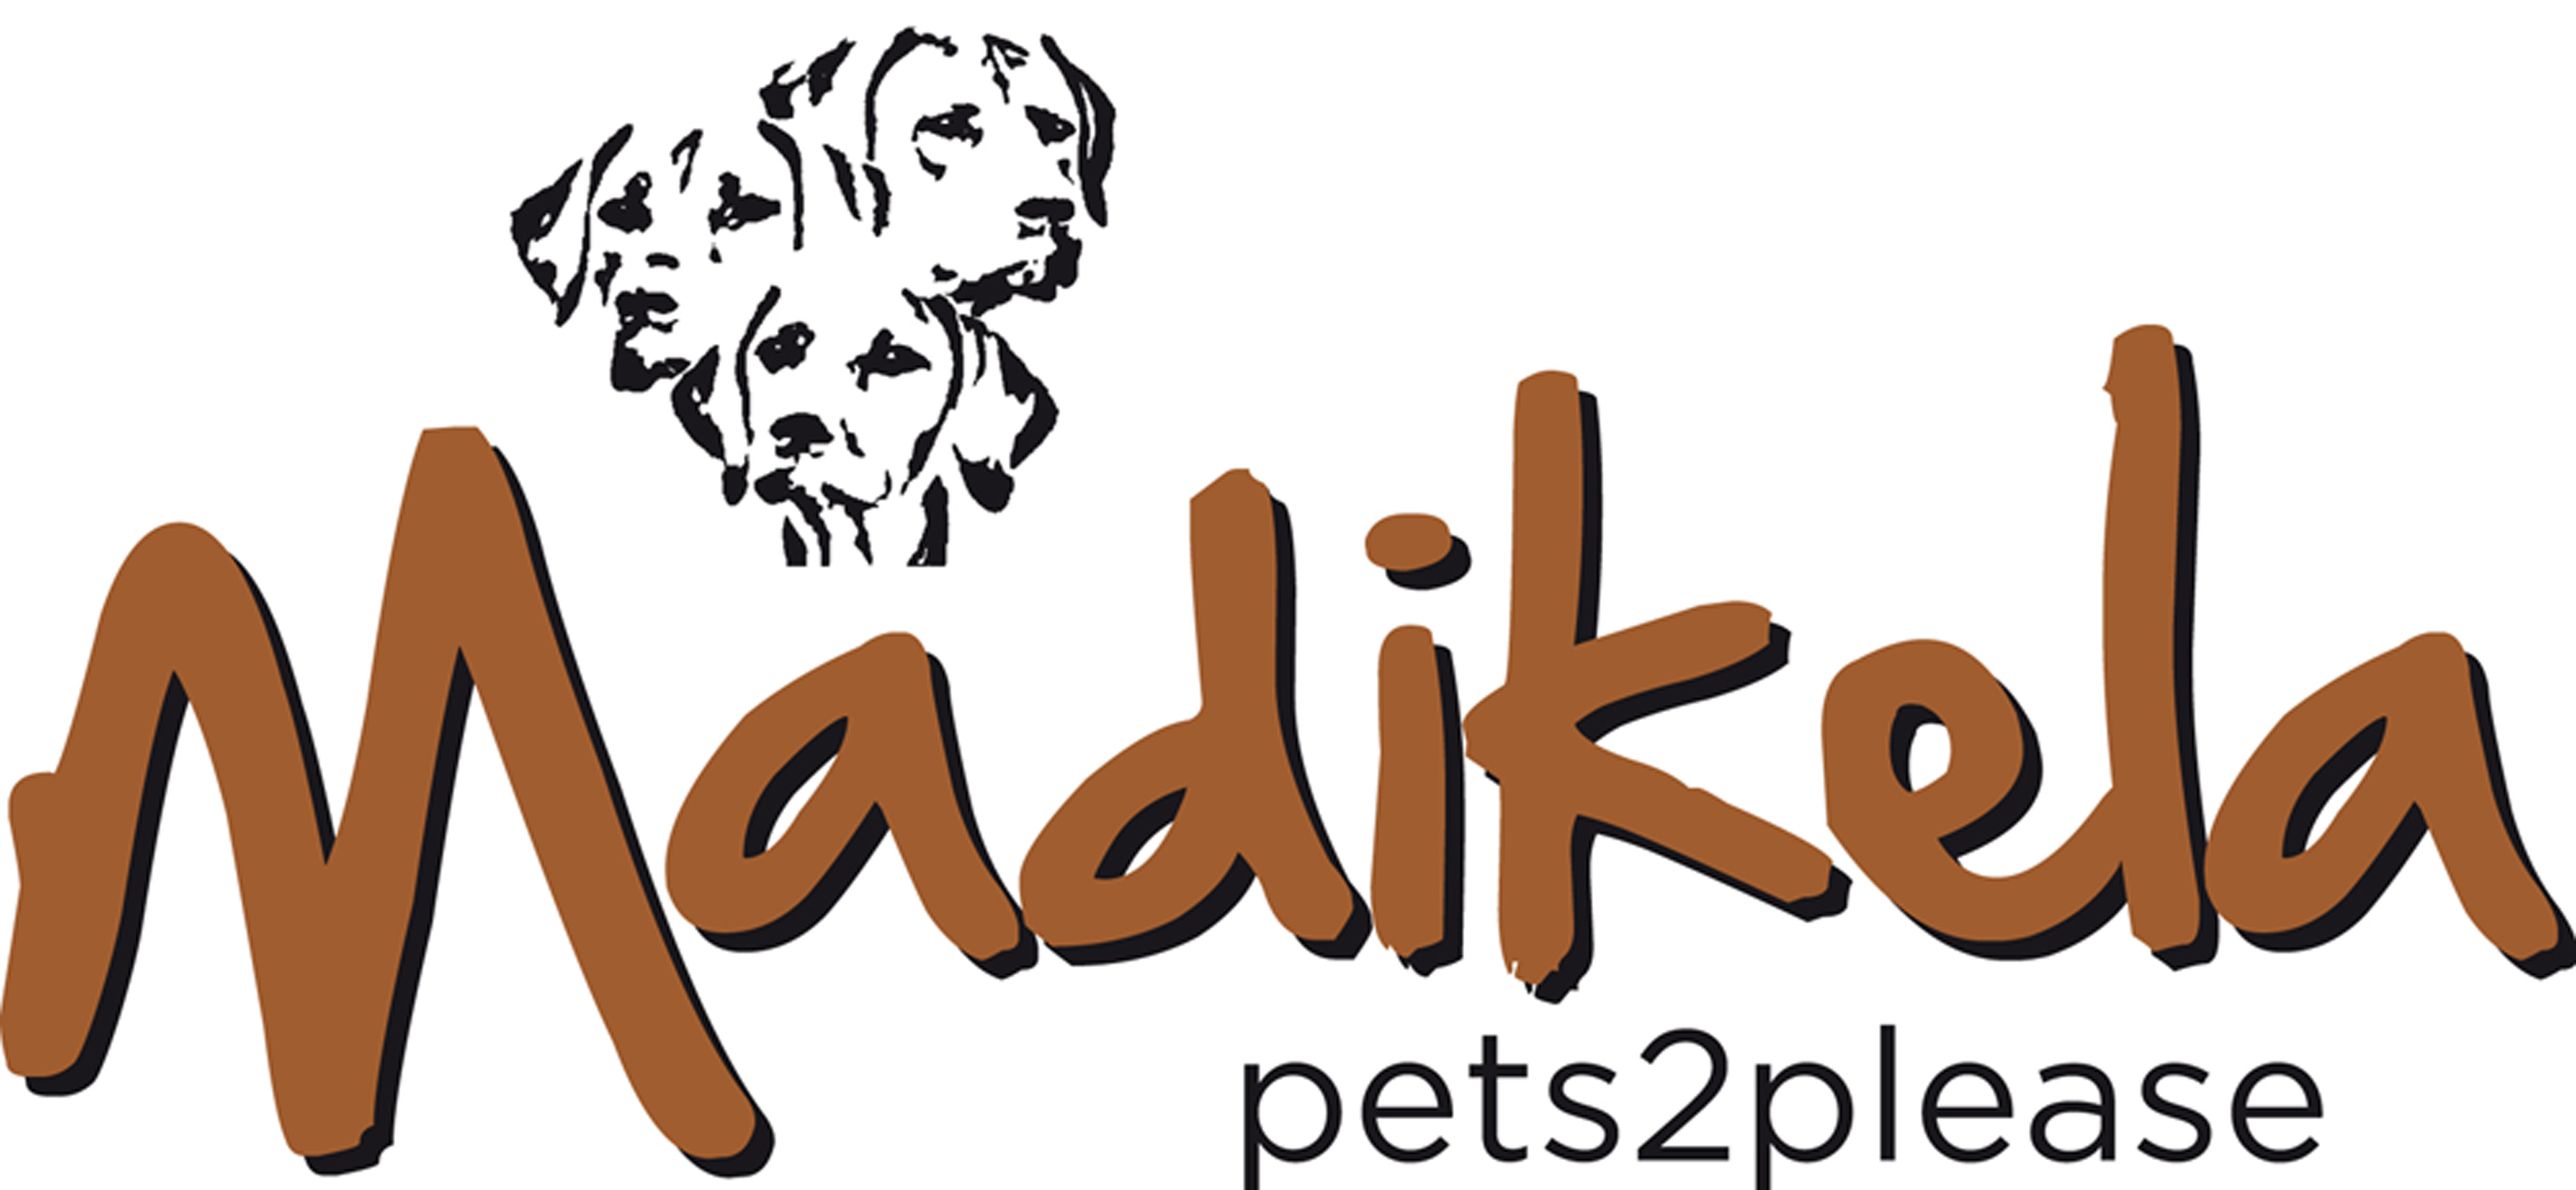 Madikela pets2please-Logo